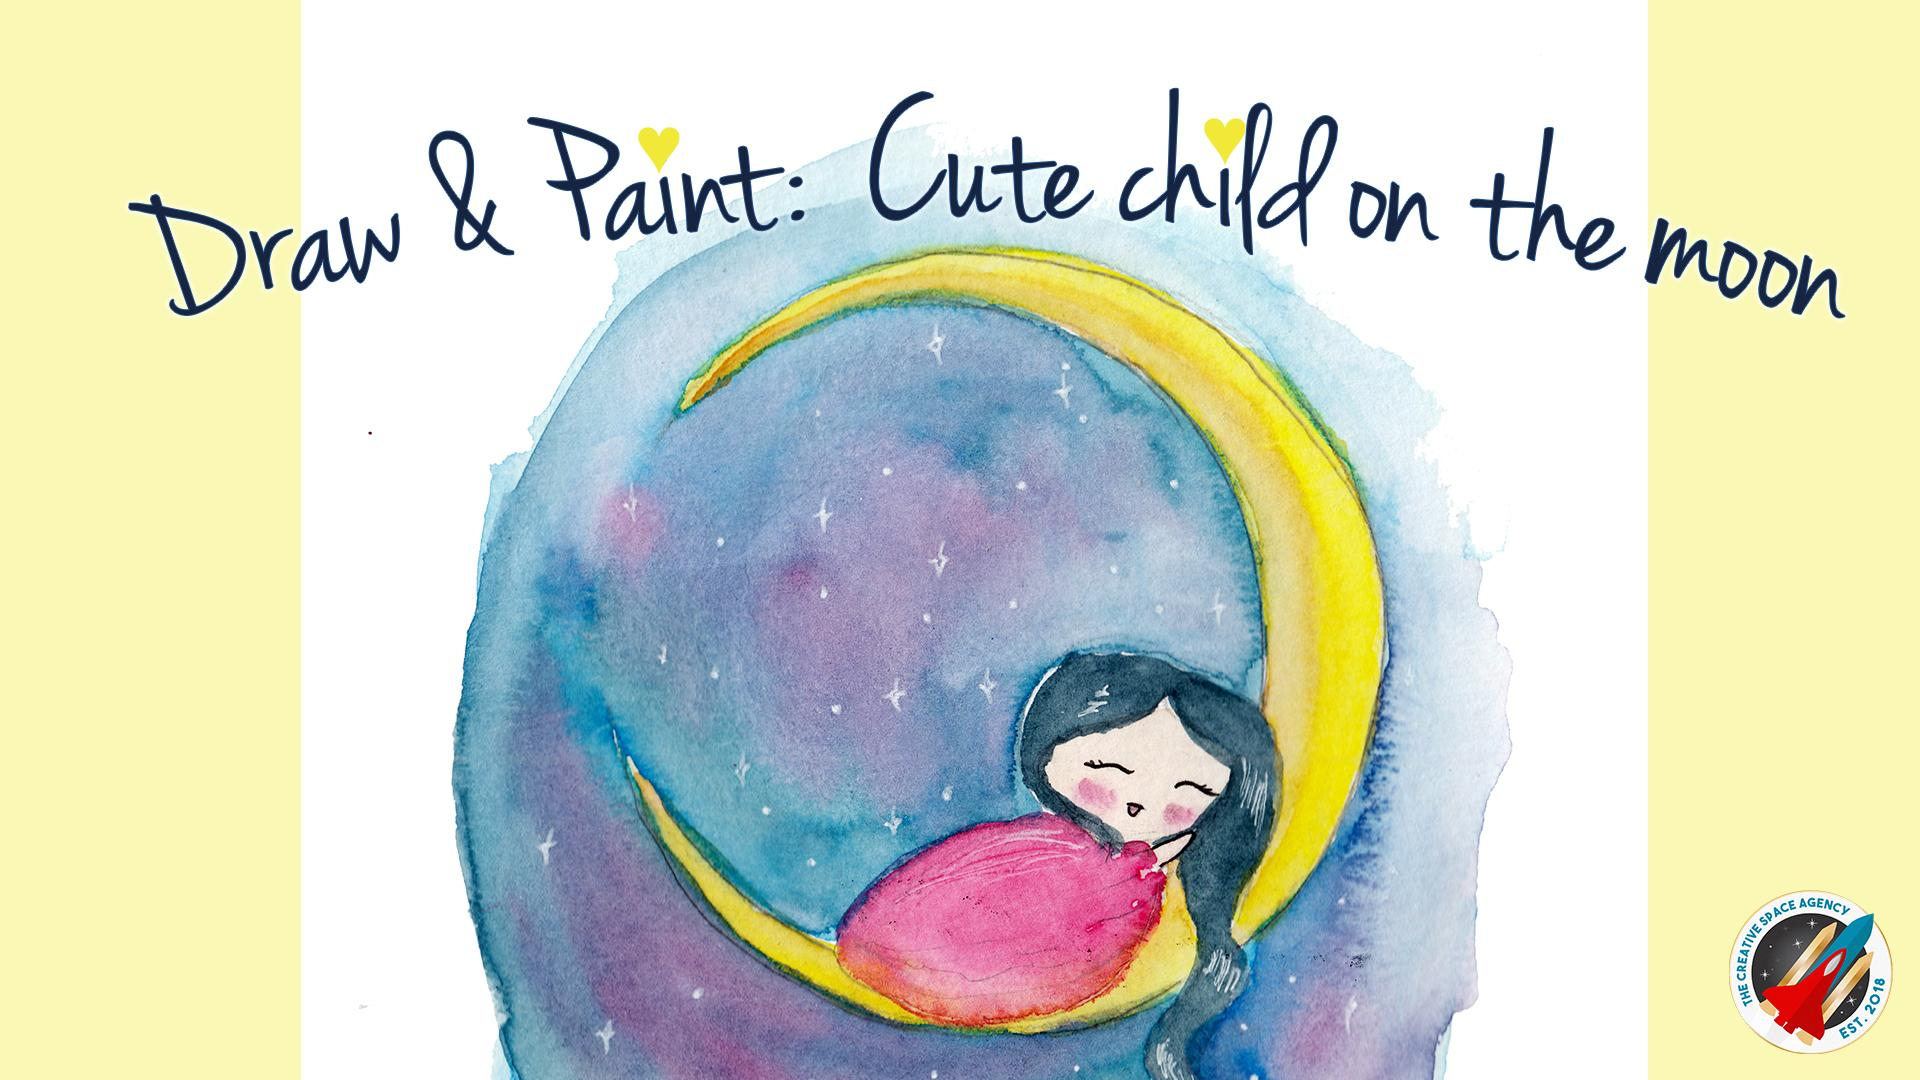 In my class draw paint cute child on the moon you will be learning how to paint in watercolor a cute and simple card of a kid sleeping on the moon